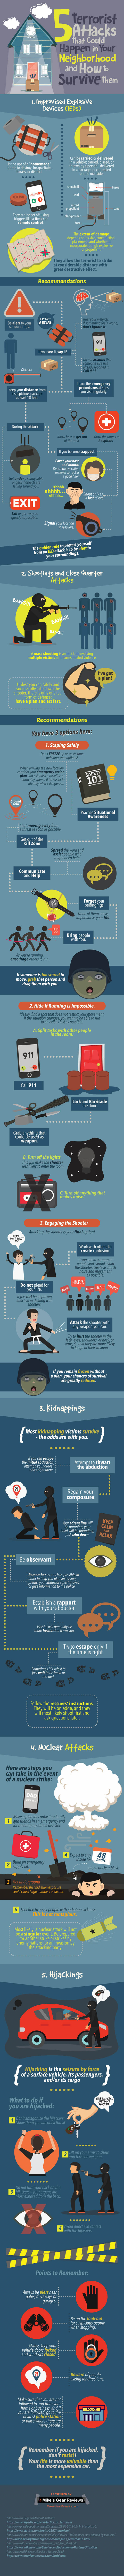 Living Under the Daily Threat of Terrorism: 5 Types of Attacks and Survival Tactics - Infographic